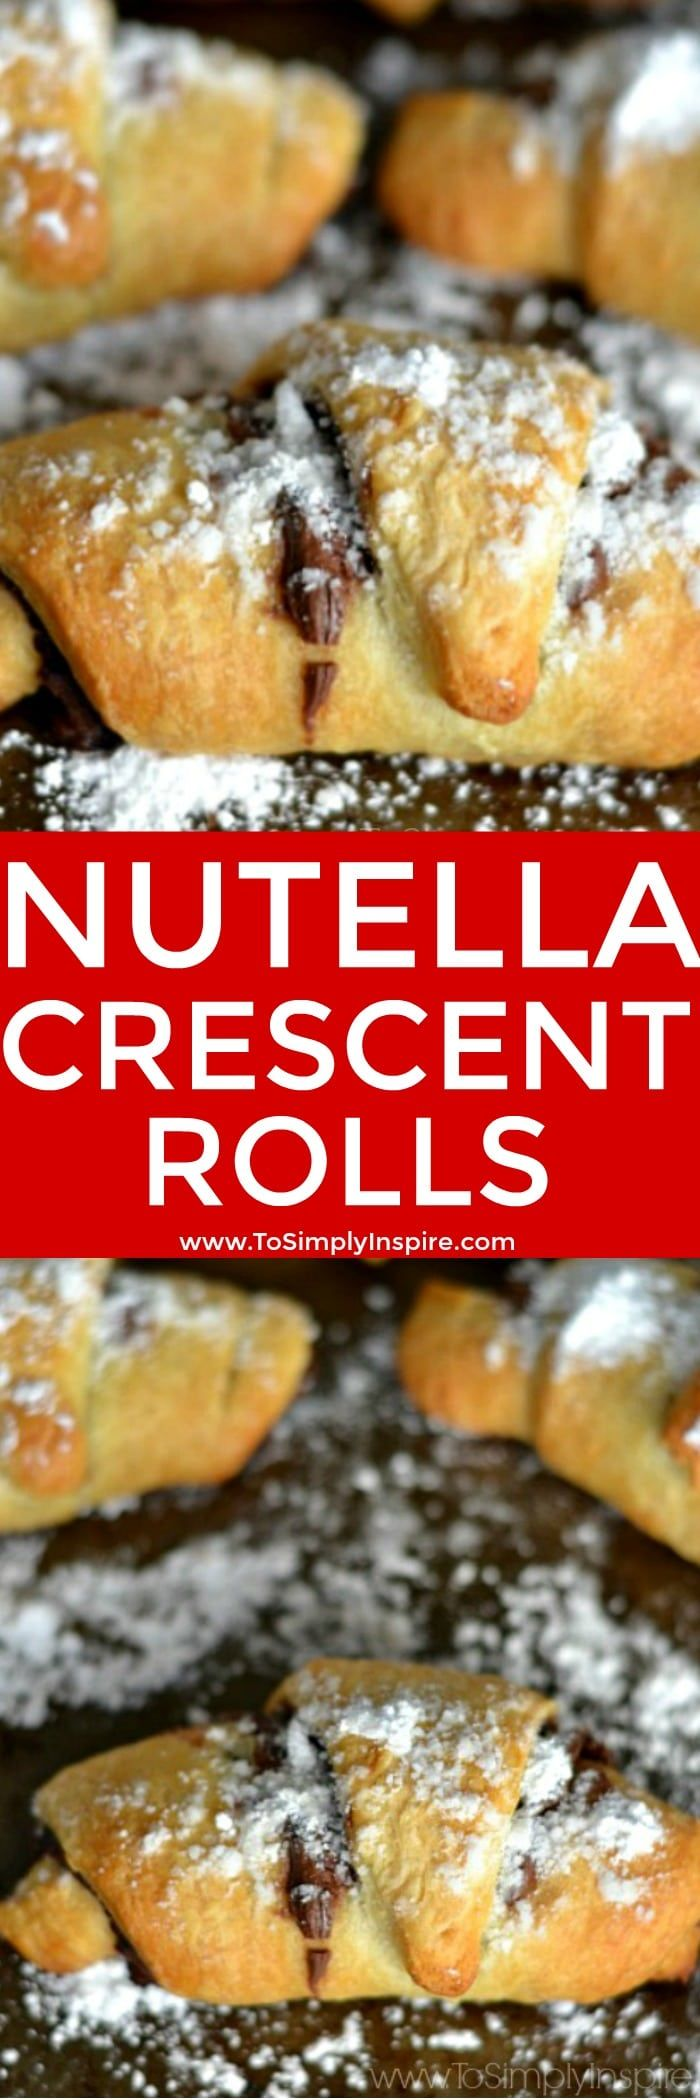 These simple and delicious Nutella Crescent Rolls are quick and easy to make. With only 3 ingredients, they are a yummy little treat for any occasion.